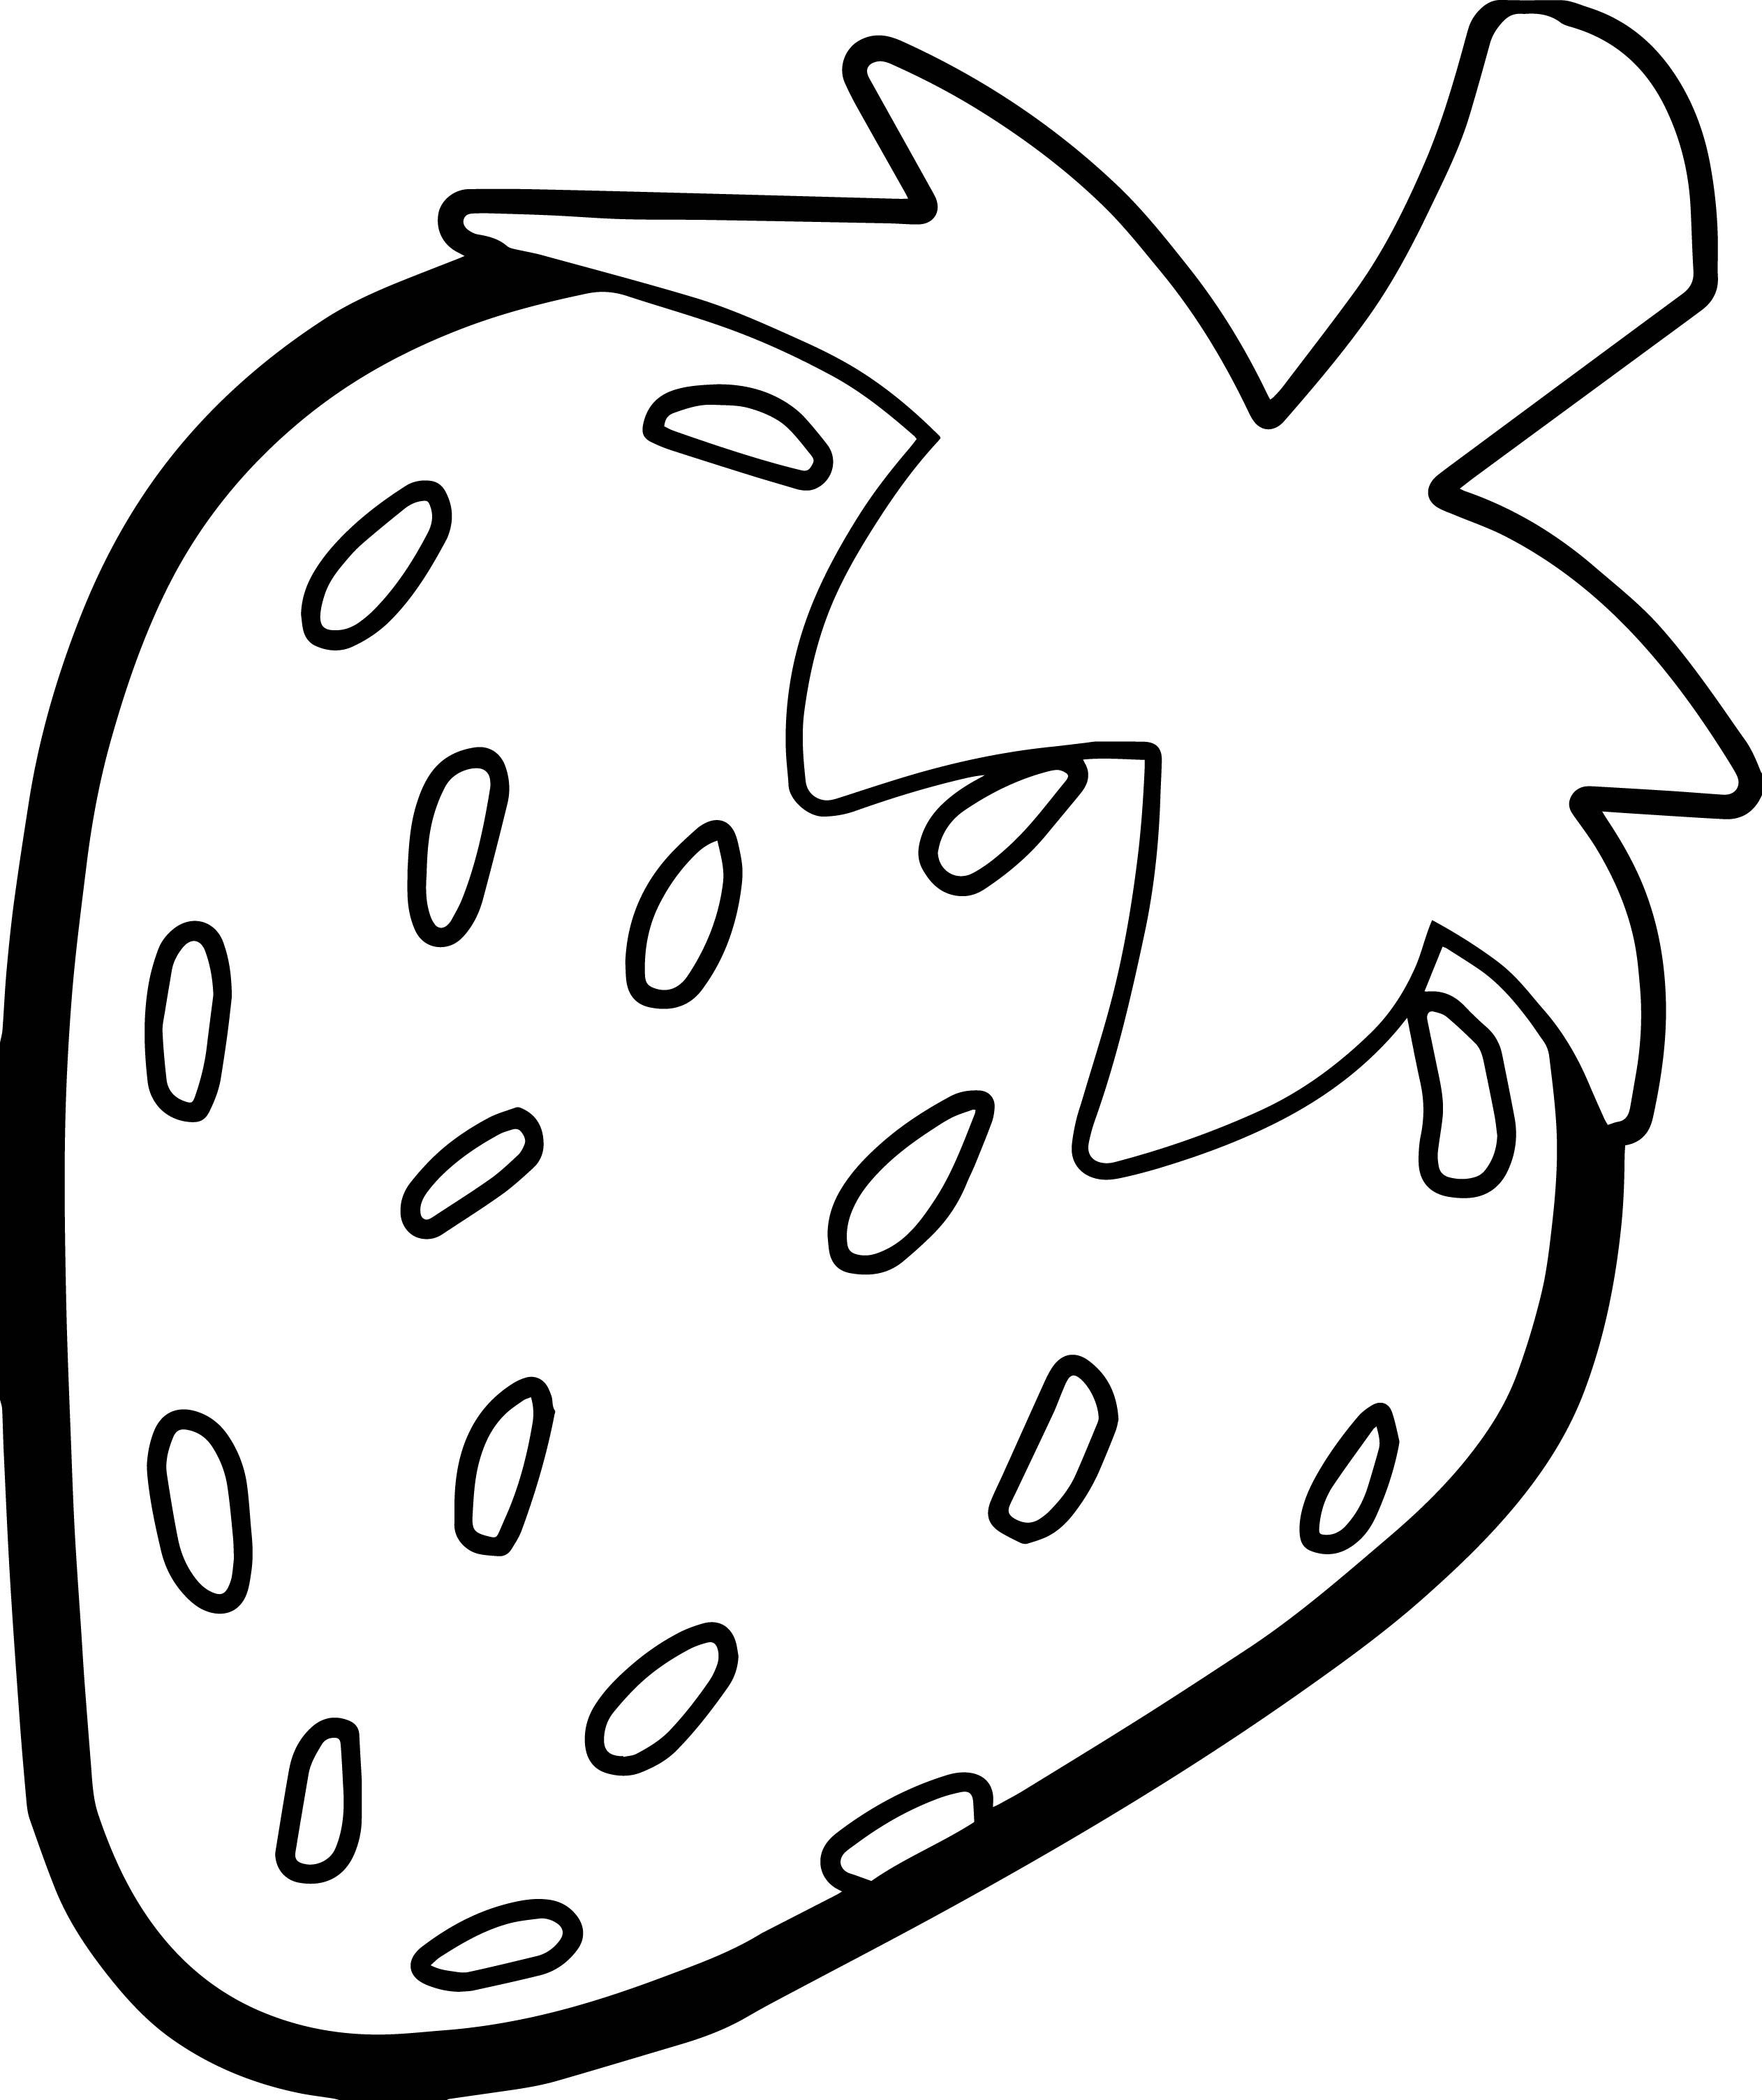 picture black and white Drawing strawberries outline. Nice strawberry bold coloring